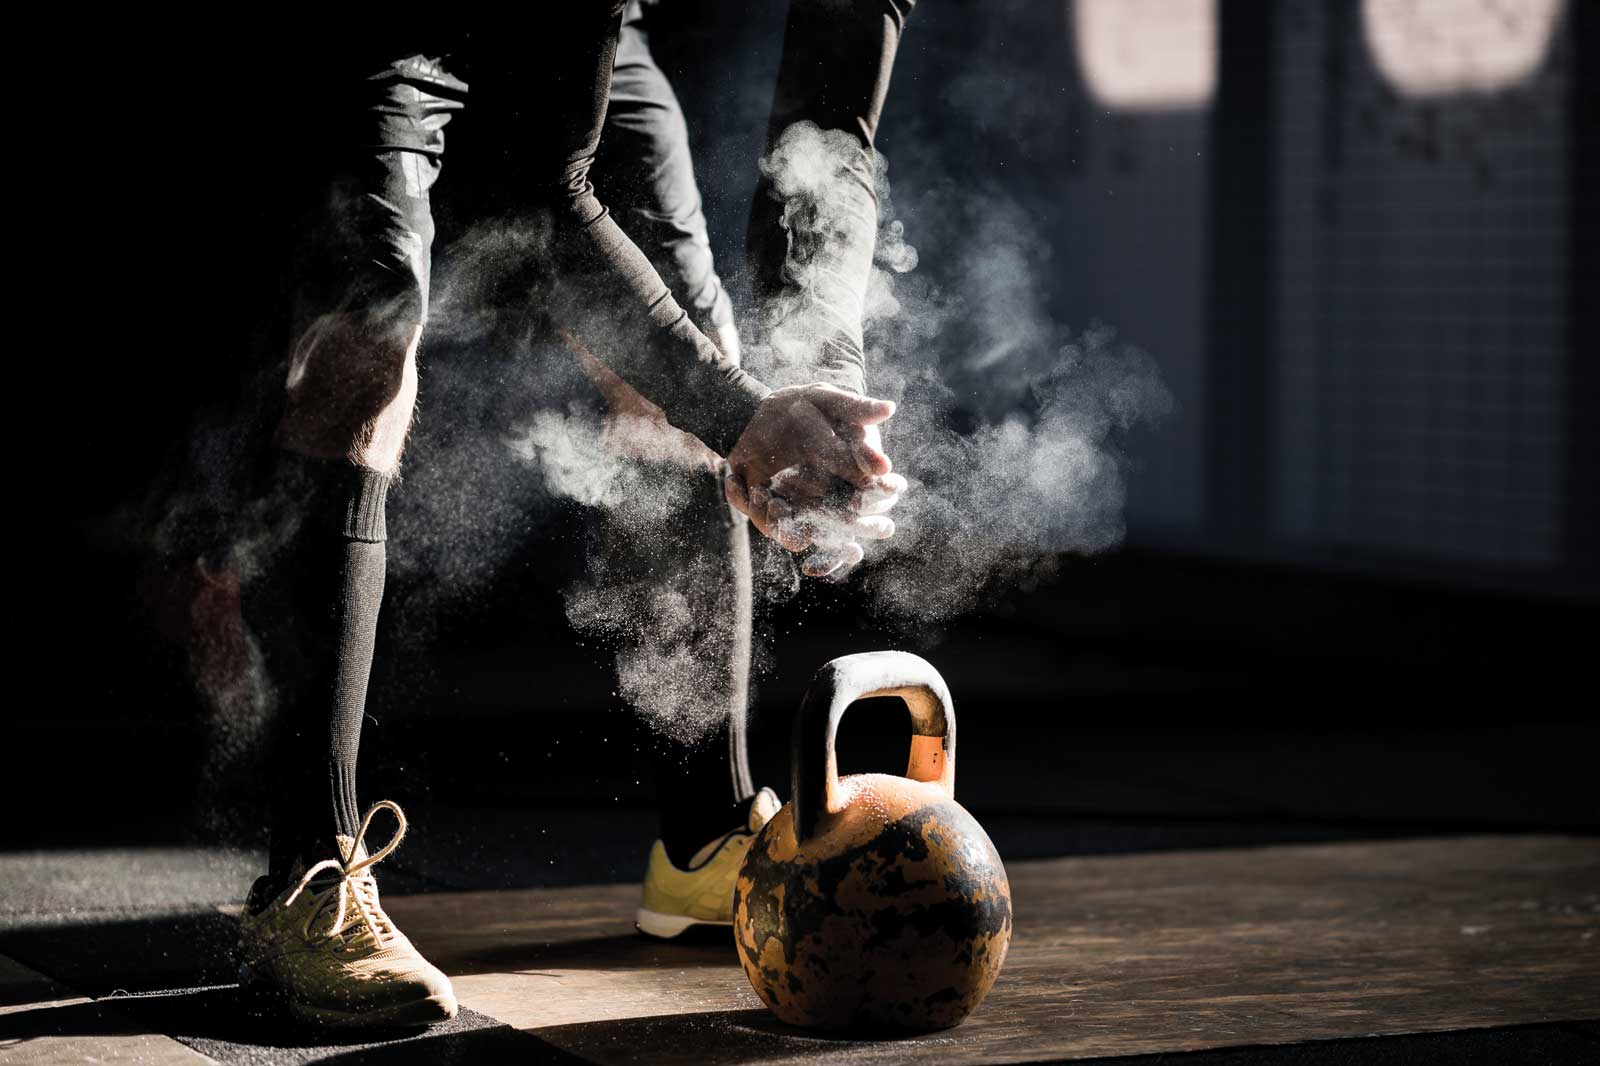 Man dusting hands over kettle bell